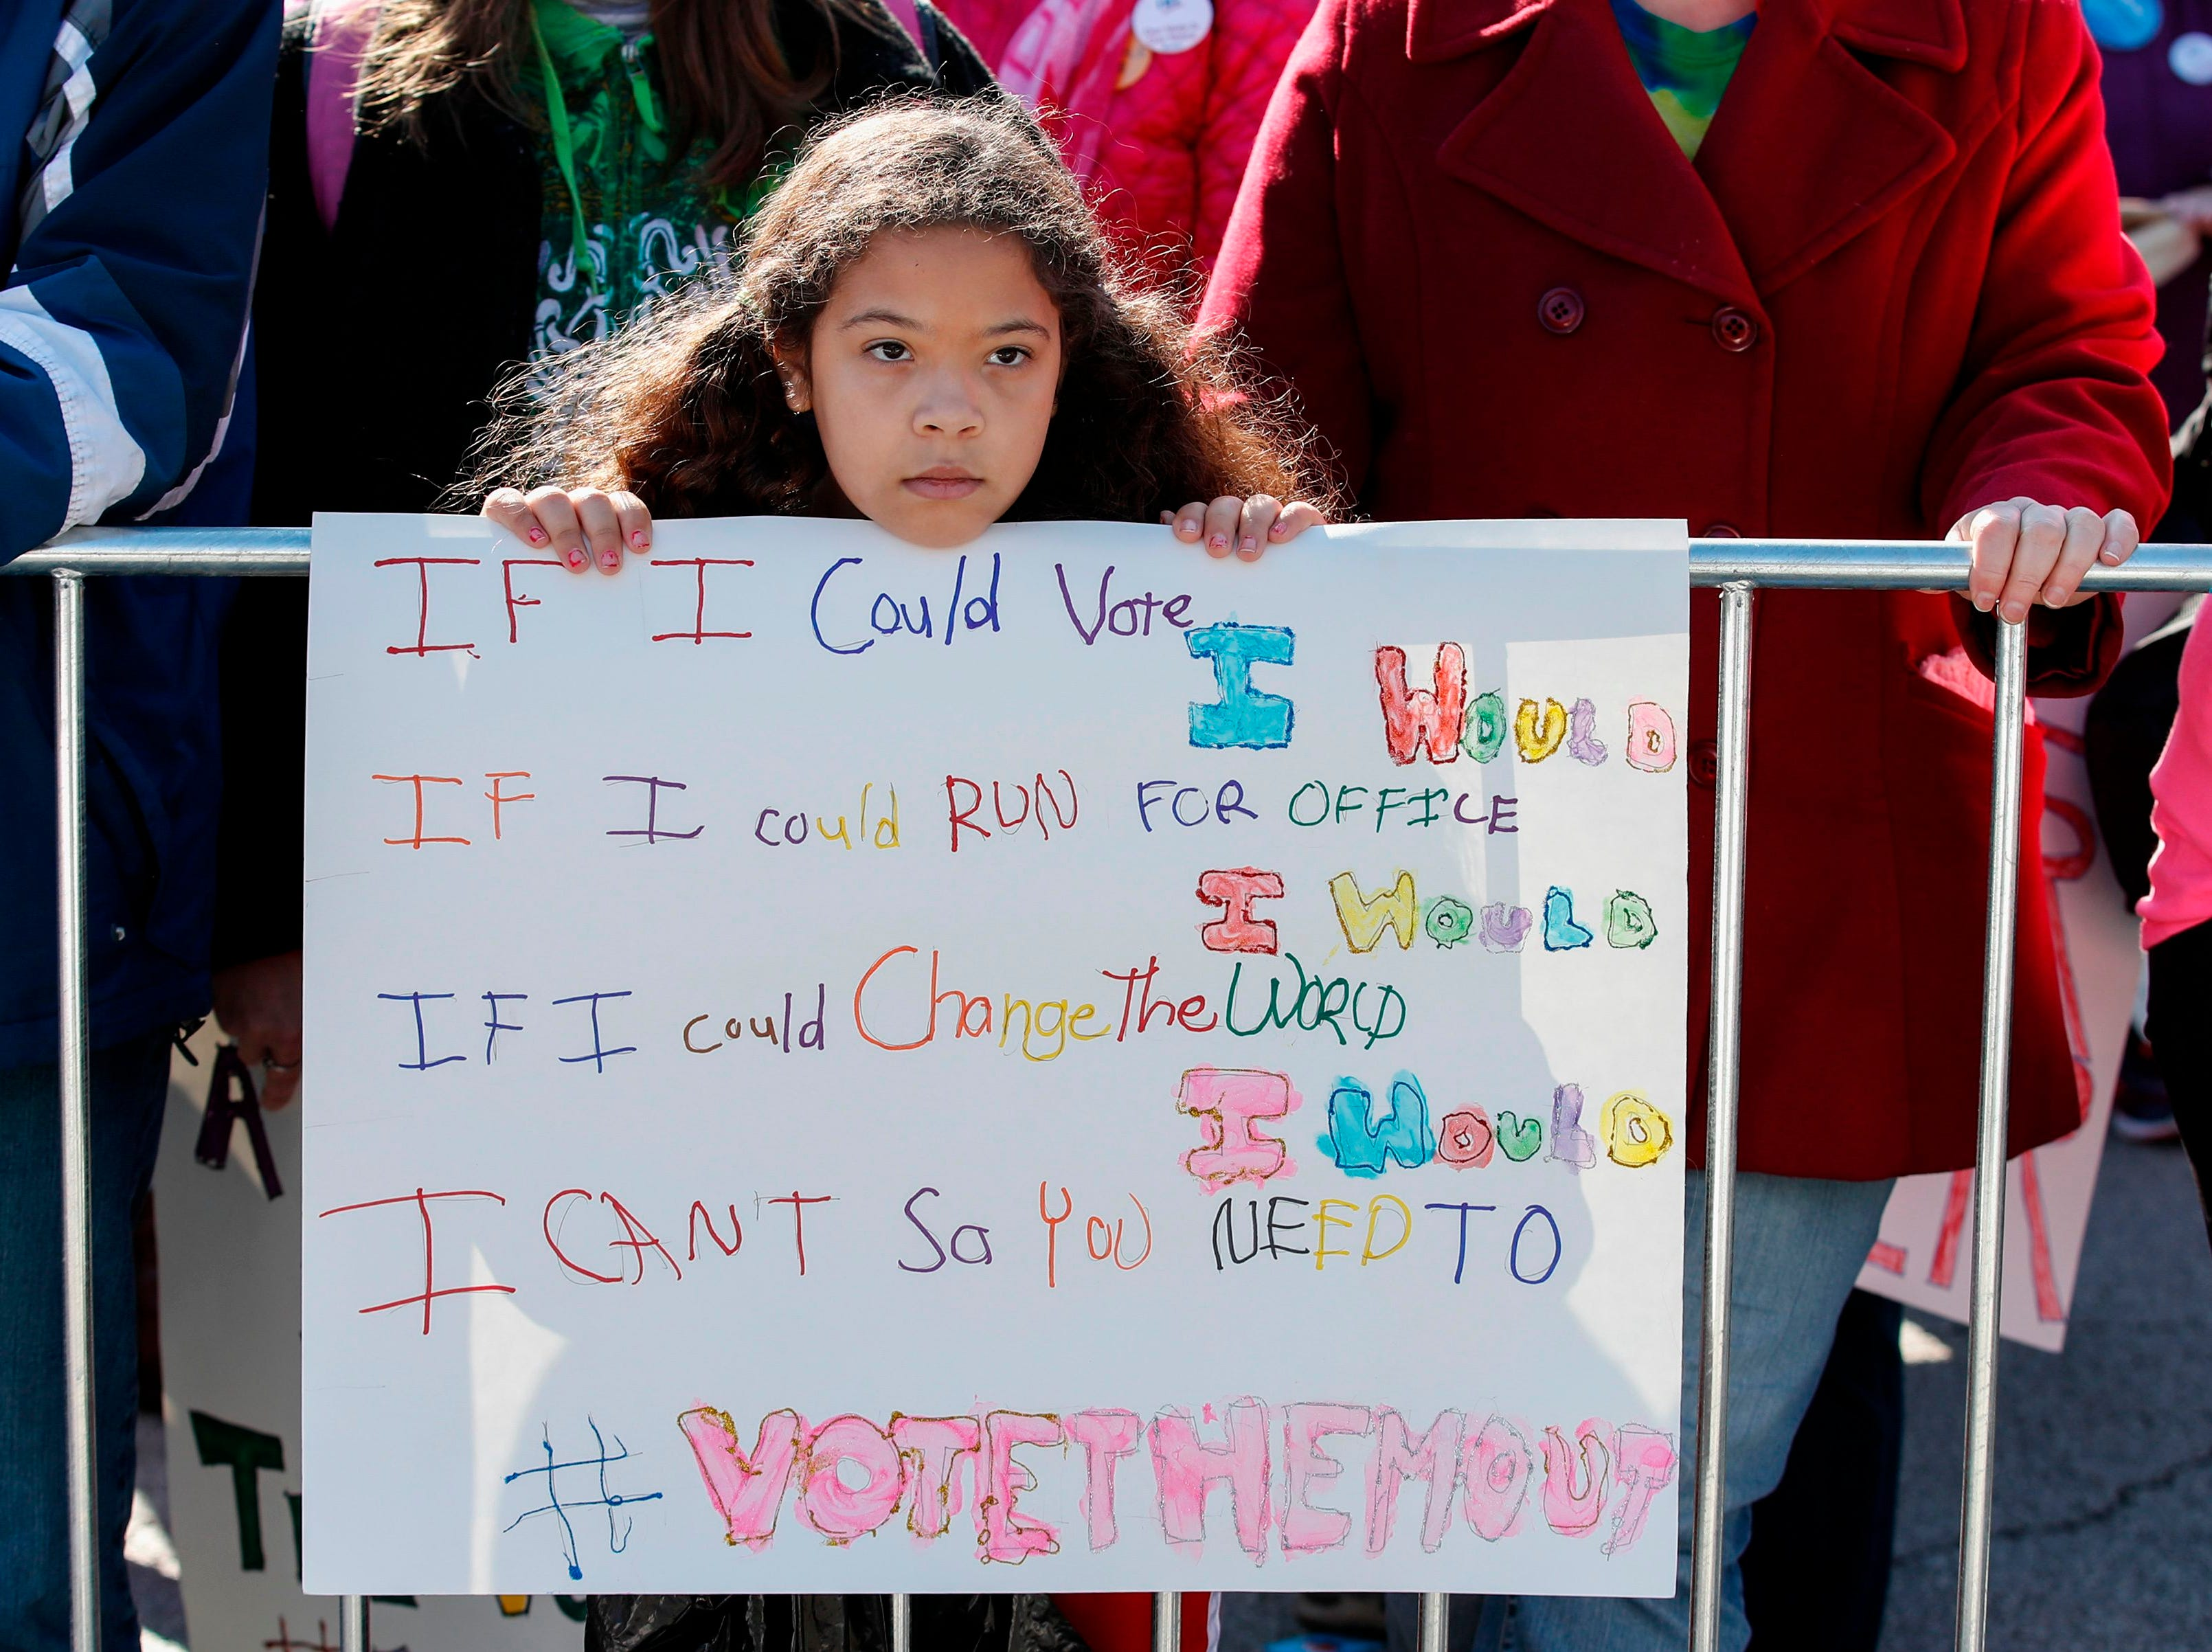 "A young girl listens as women gather for a rally and march at Grant Park on Oct. 13, 2018 in Chicago, Ill. to inspire voter turnout ahead of midterm polls in the United States. Women angered by the bitter fight over a US Supreme Court nominee and what they called the ""anti-woman agenda"" of the Trump administration headed into the streets of Chicago on Saturday in a display of political might. The rally, organized by Women's March Chicago, was designed to spotlight the power and determination of women voters ahead of the crucial November 6 midterm elections, which will determine control of the US Congress. The elections are also being seen as a barometer of President Donald Trump's popularity."